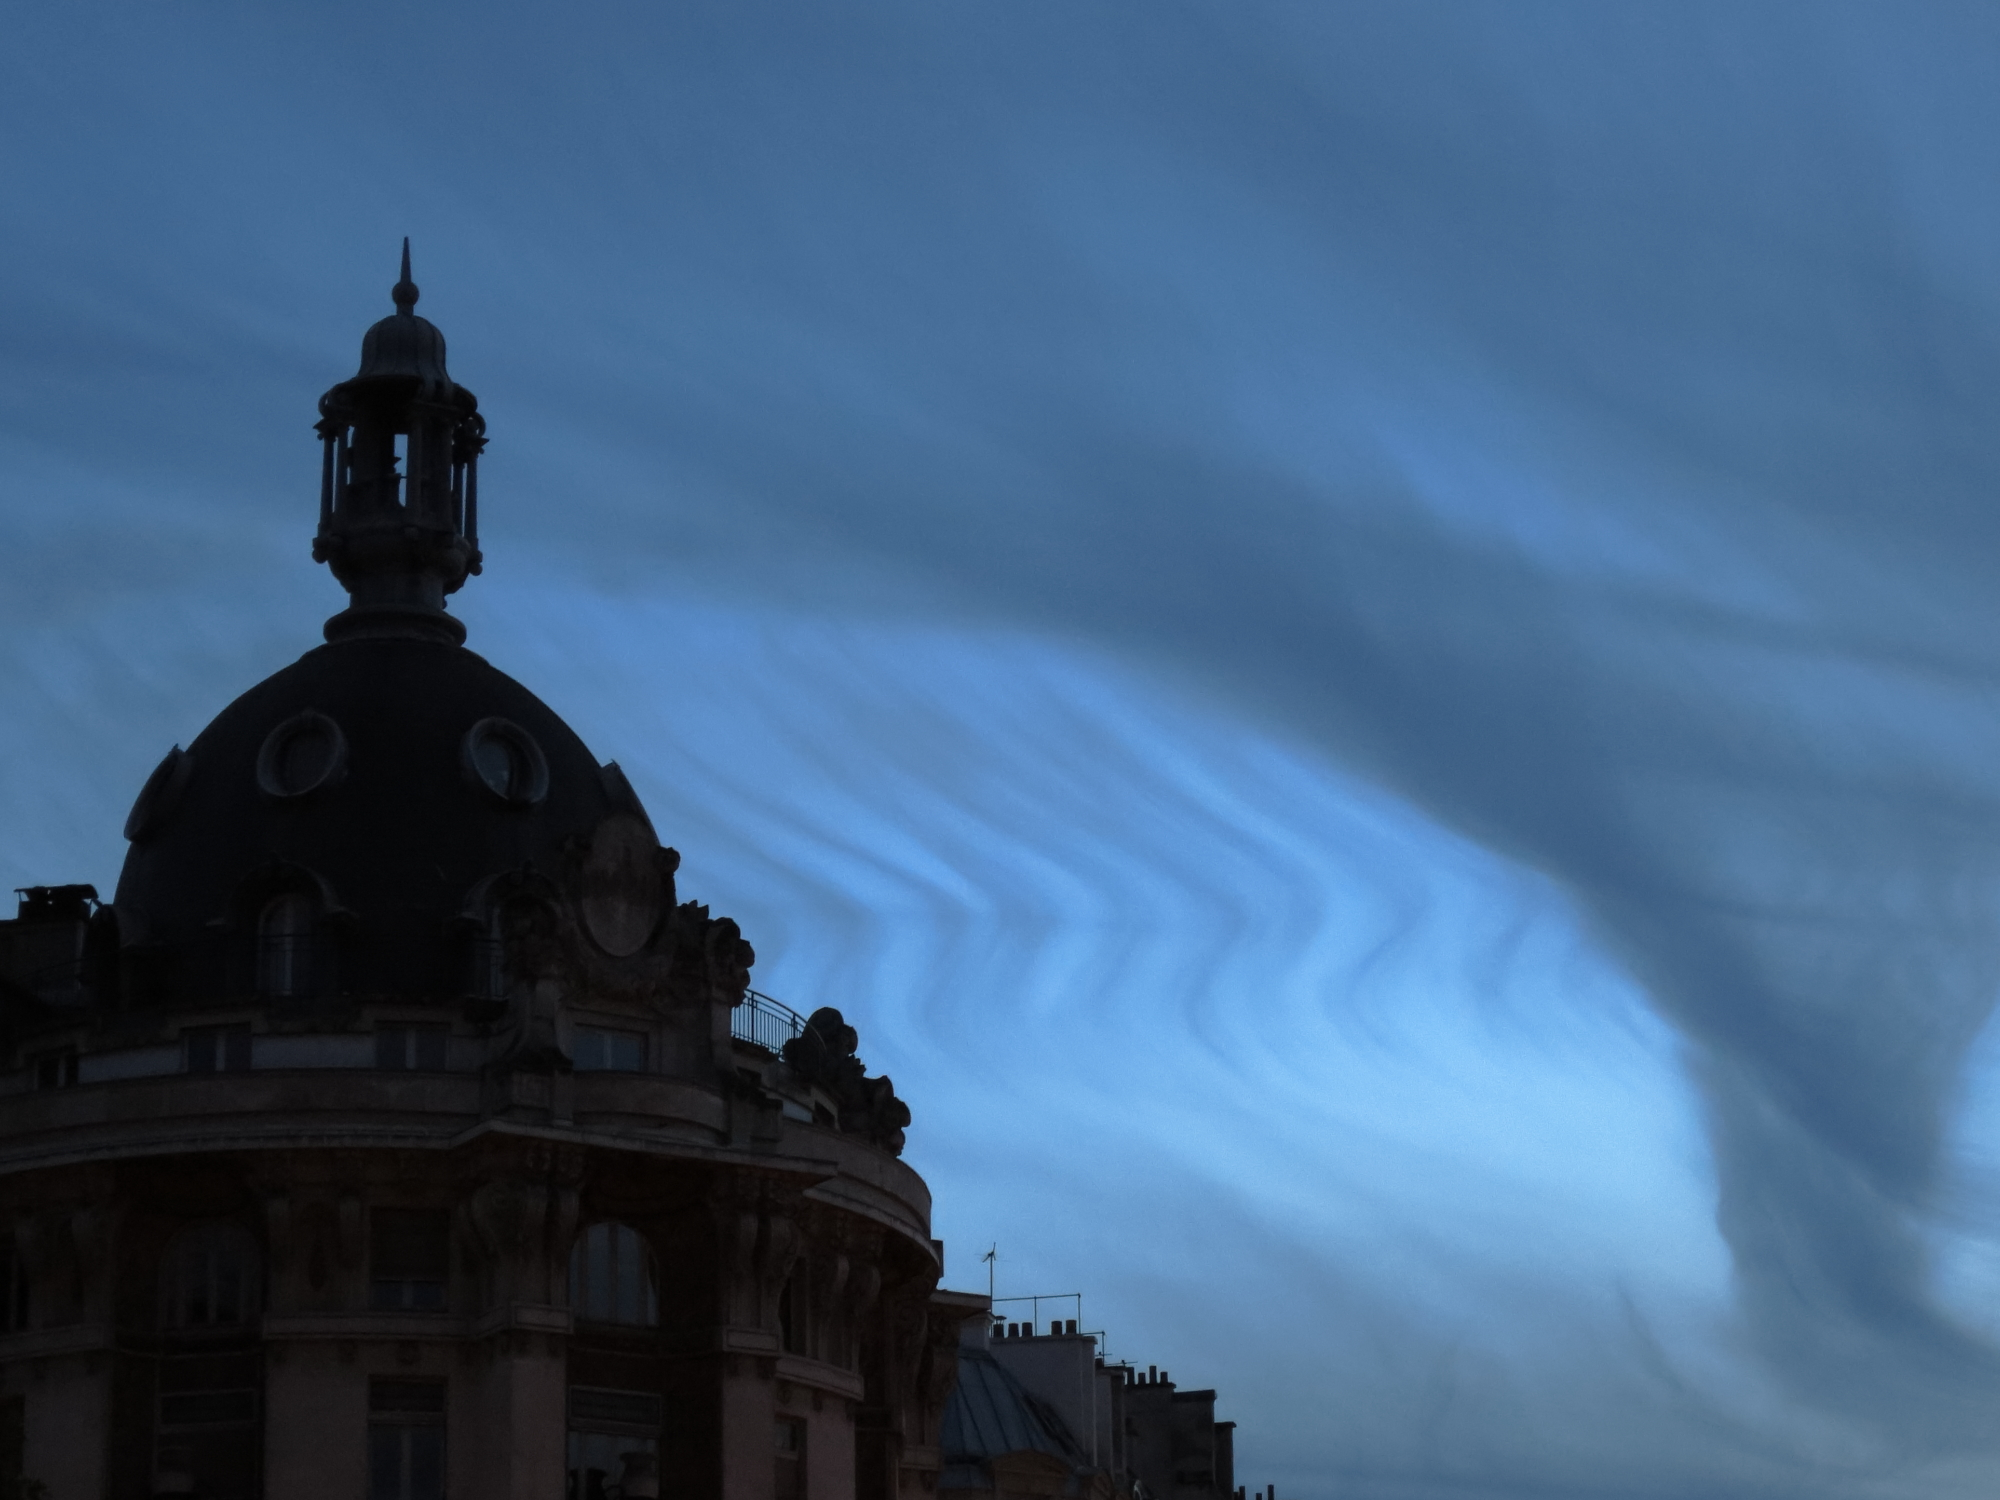 Lovely clouds behind a Parisian dome